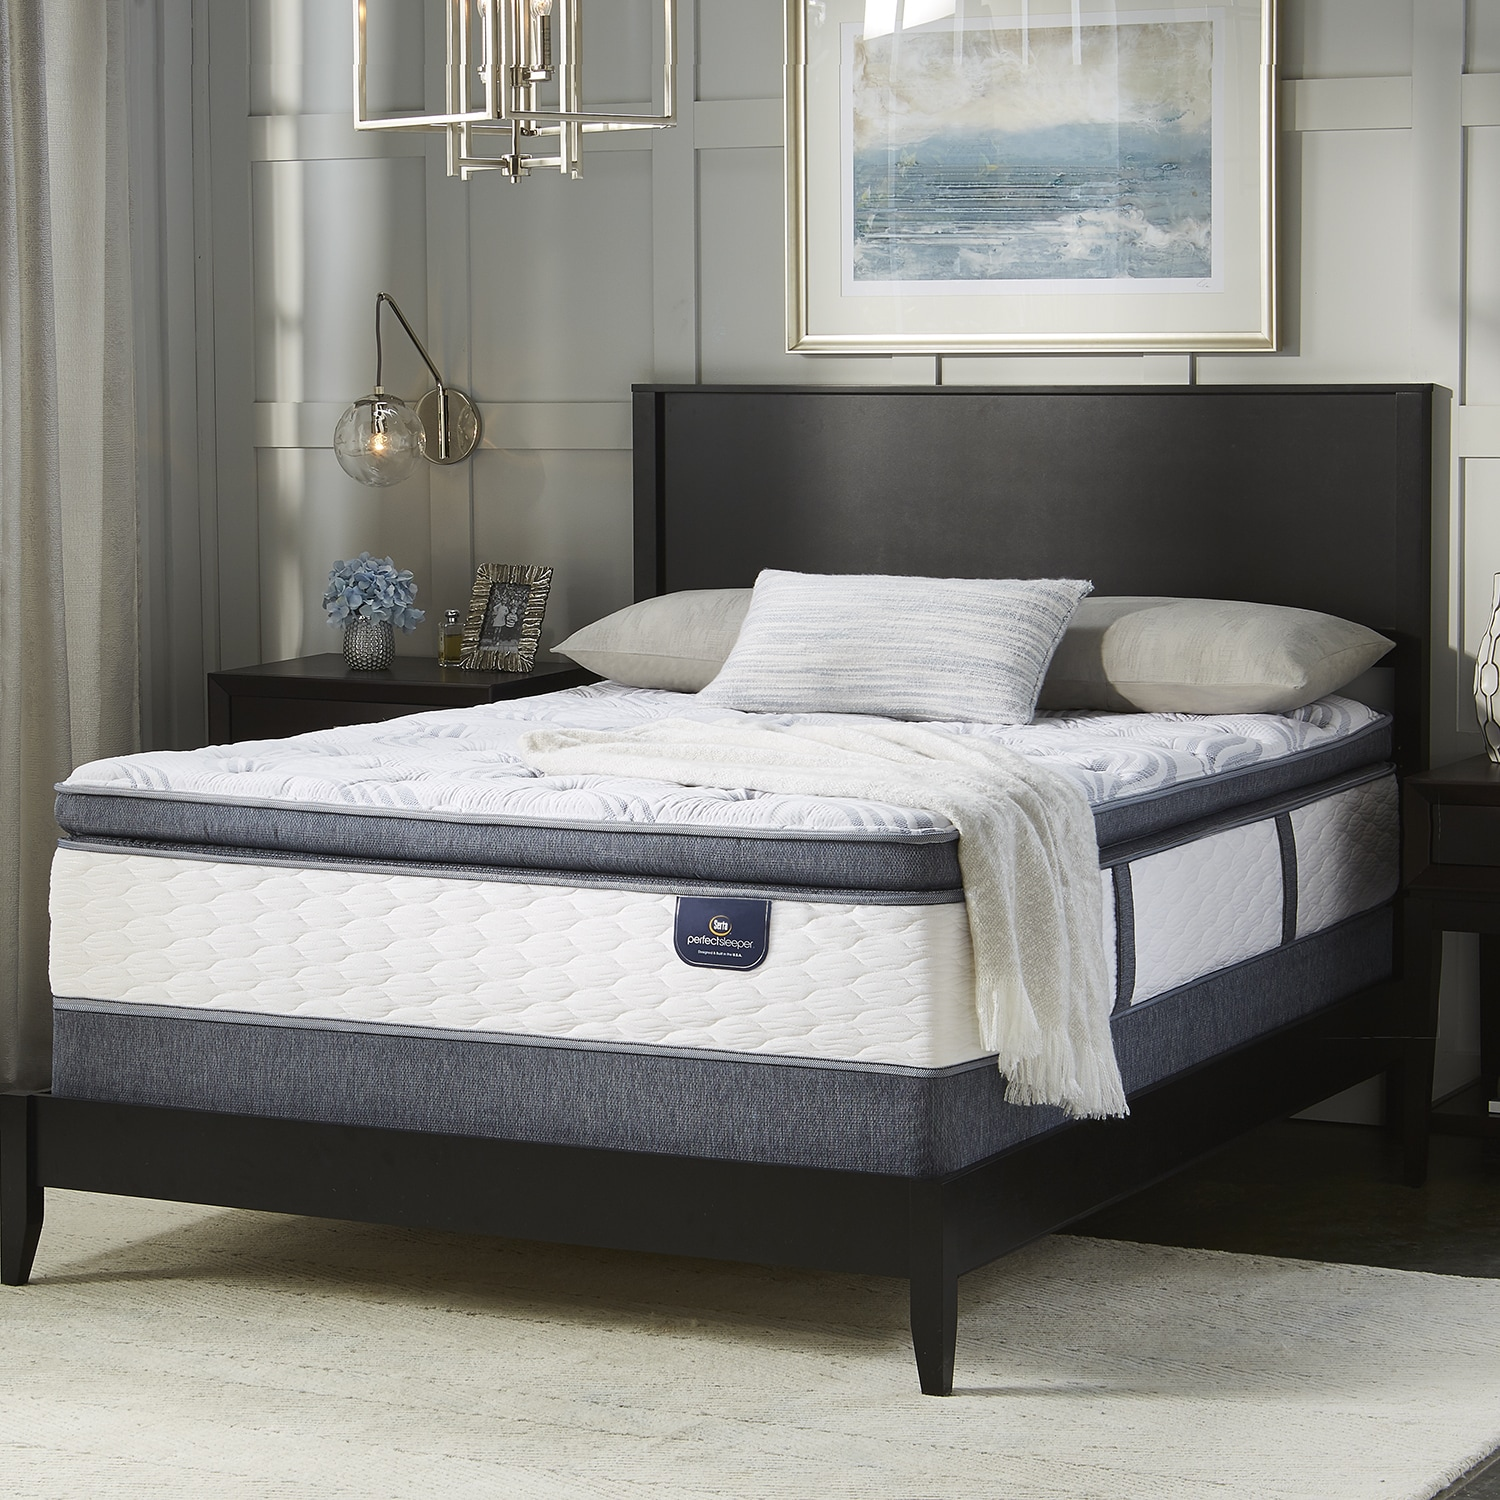 Shop Serta Perfect Sleeper Wayburn Super Pillow Top Mattress Set